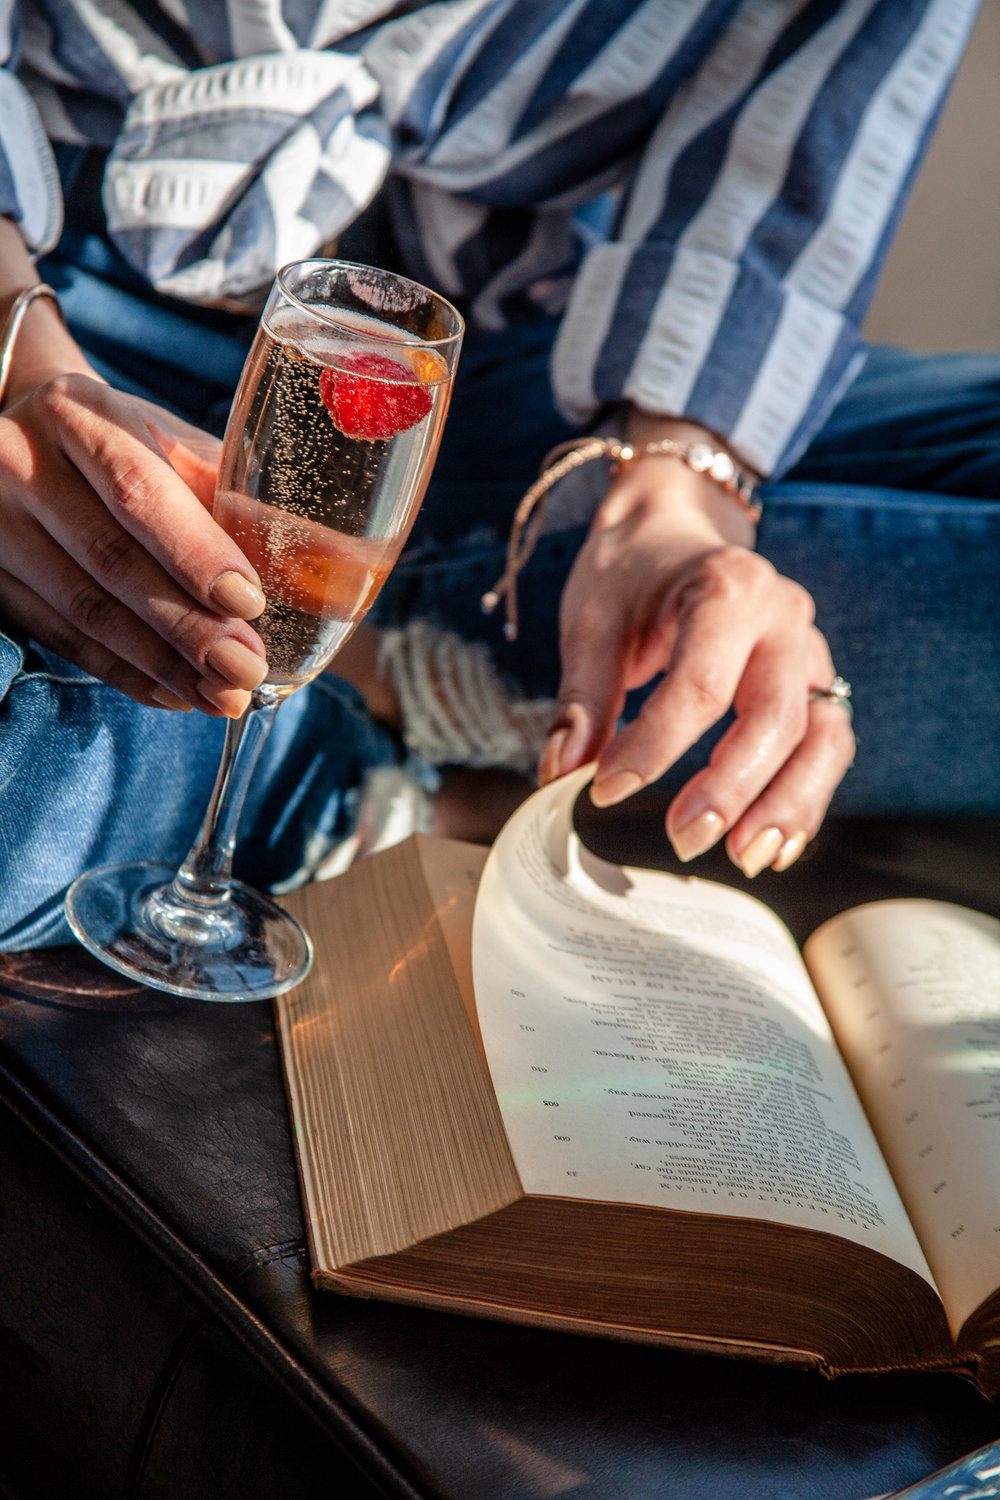 Champagne and books